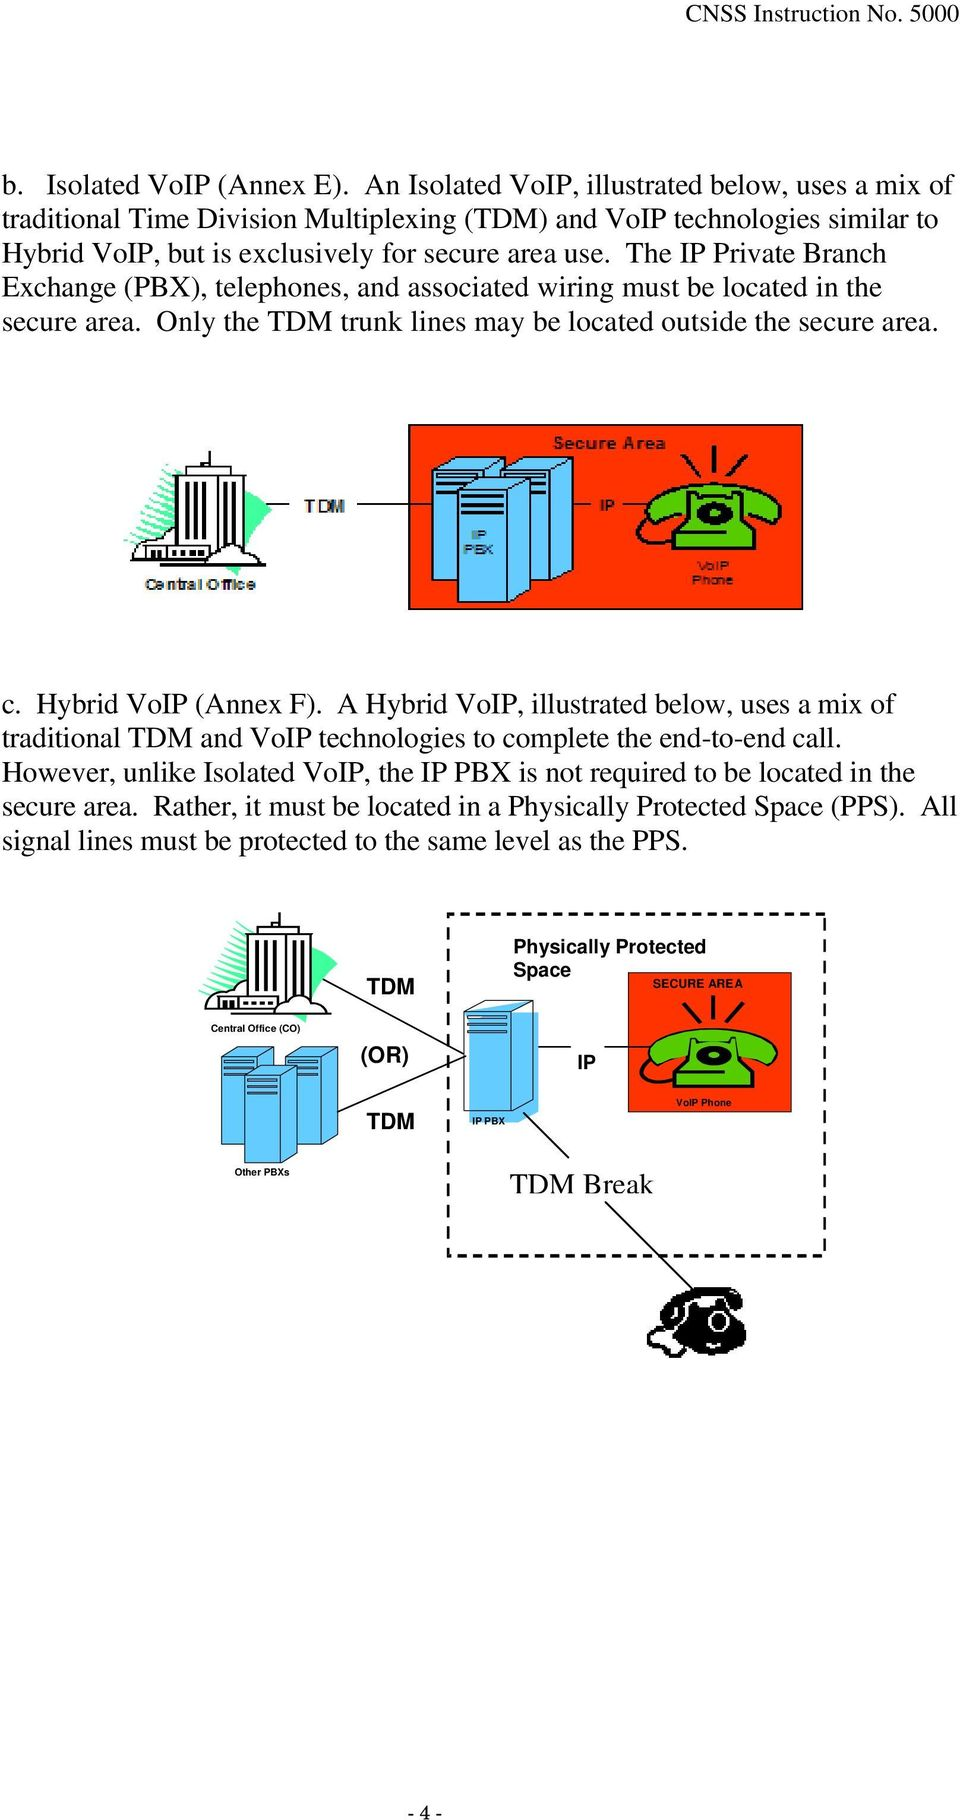 The IP Private Branch Exchange (PBX), telephones, and associated wiring must be located in the secure area. Only the TDM trunk lines may be located outside the secure area. c. Hybrid VoIP (Annex F).